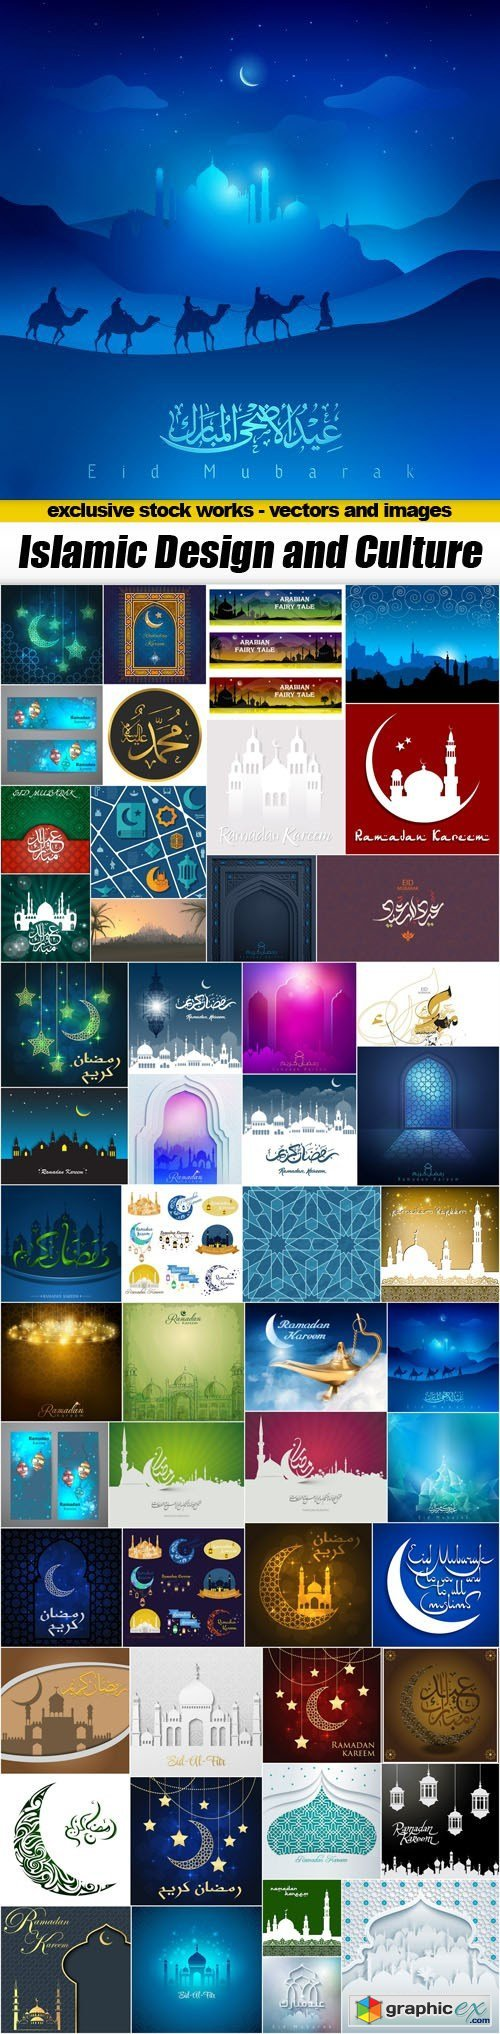 Islamic Design and Culture - 50xEPS